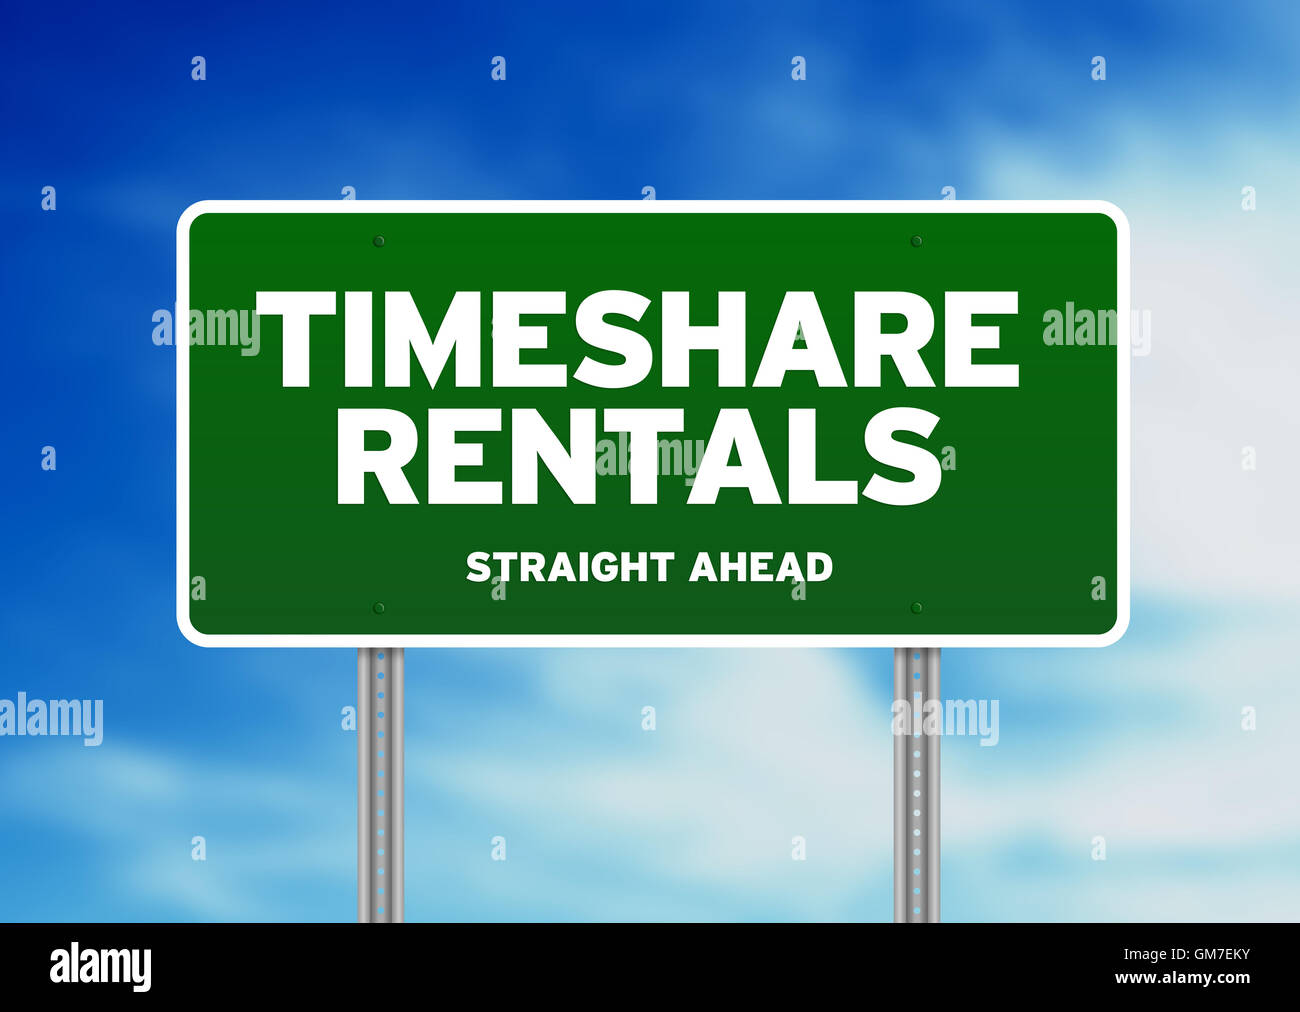 Green Road Sign - Timeshare Rentals - Stock Image